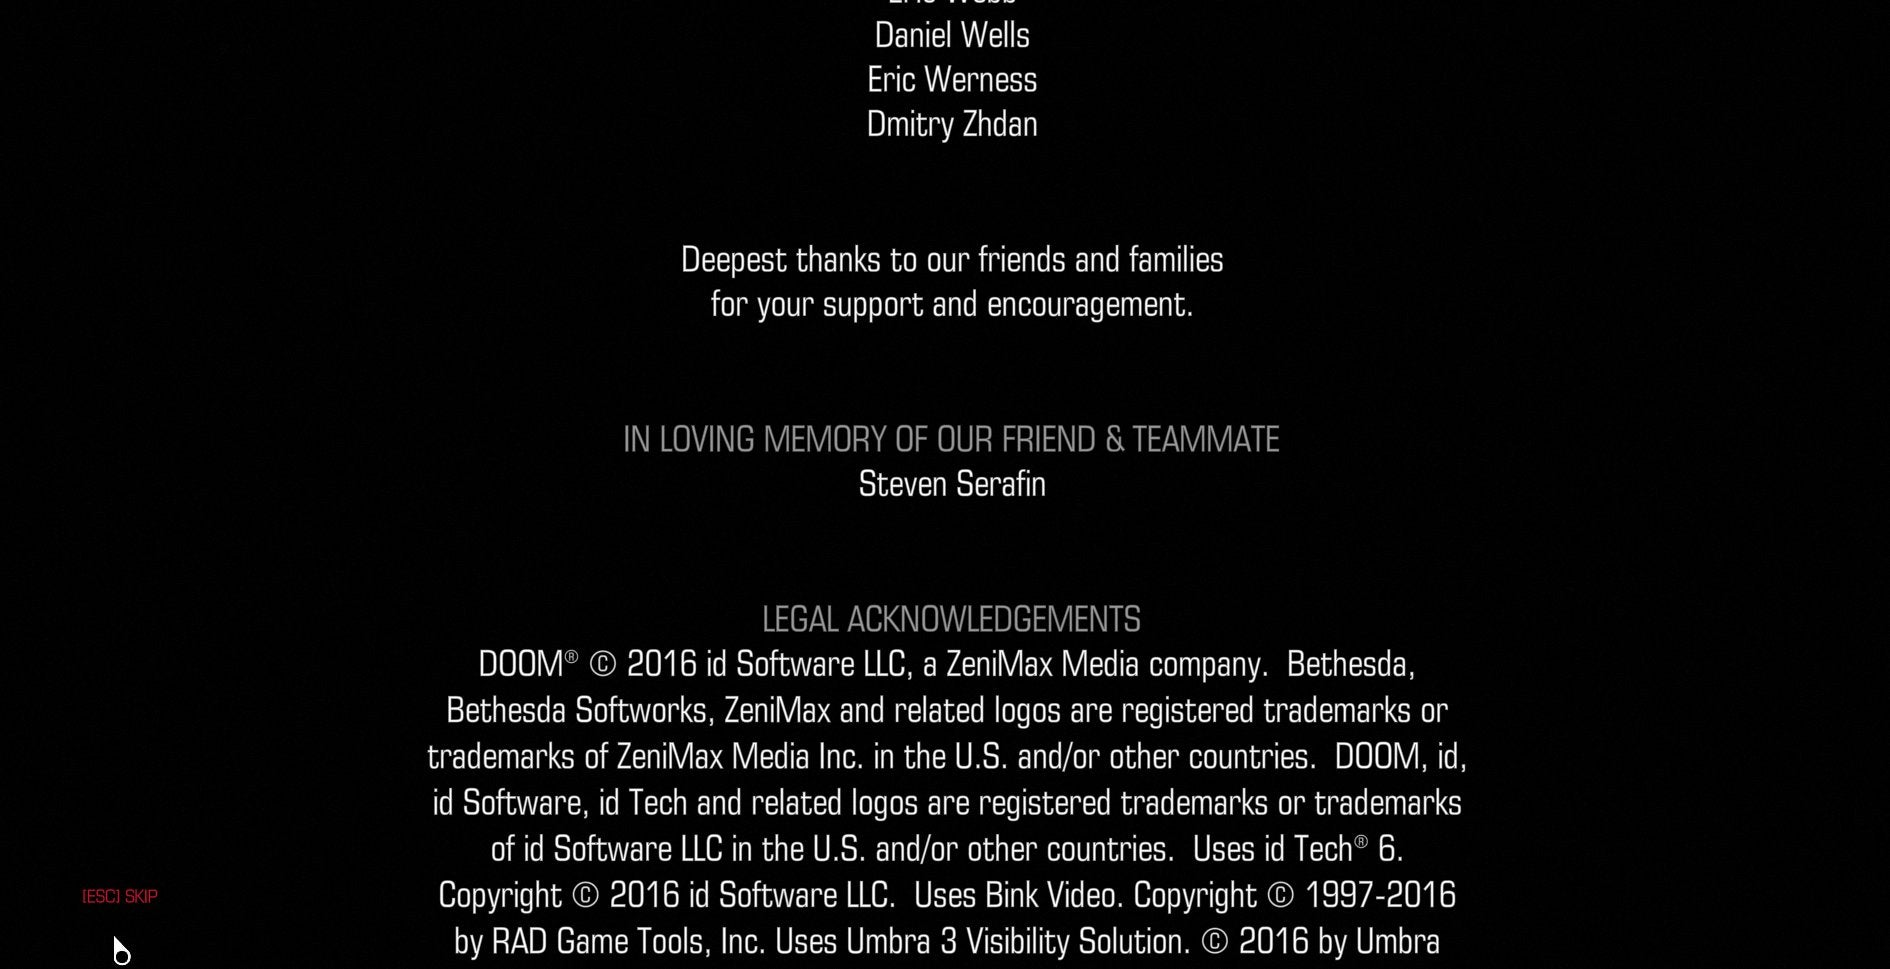 f3695842142a His colleagues put this nice shoutout in the credits of their newest game